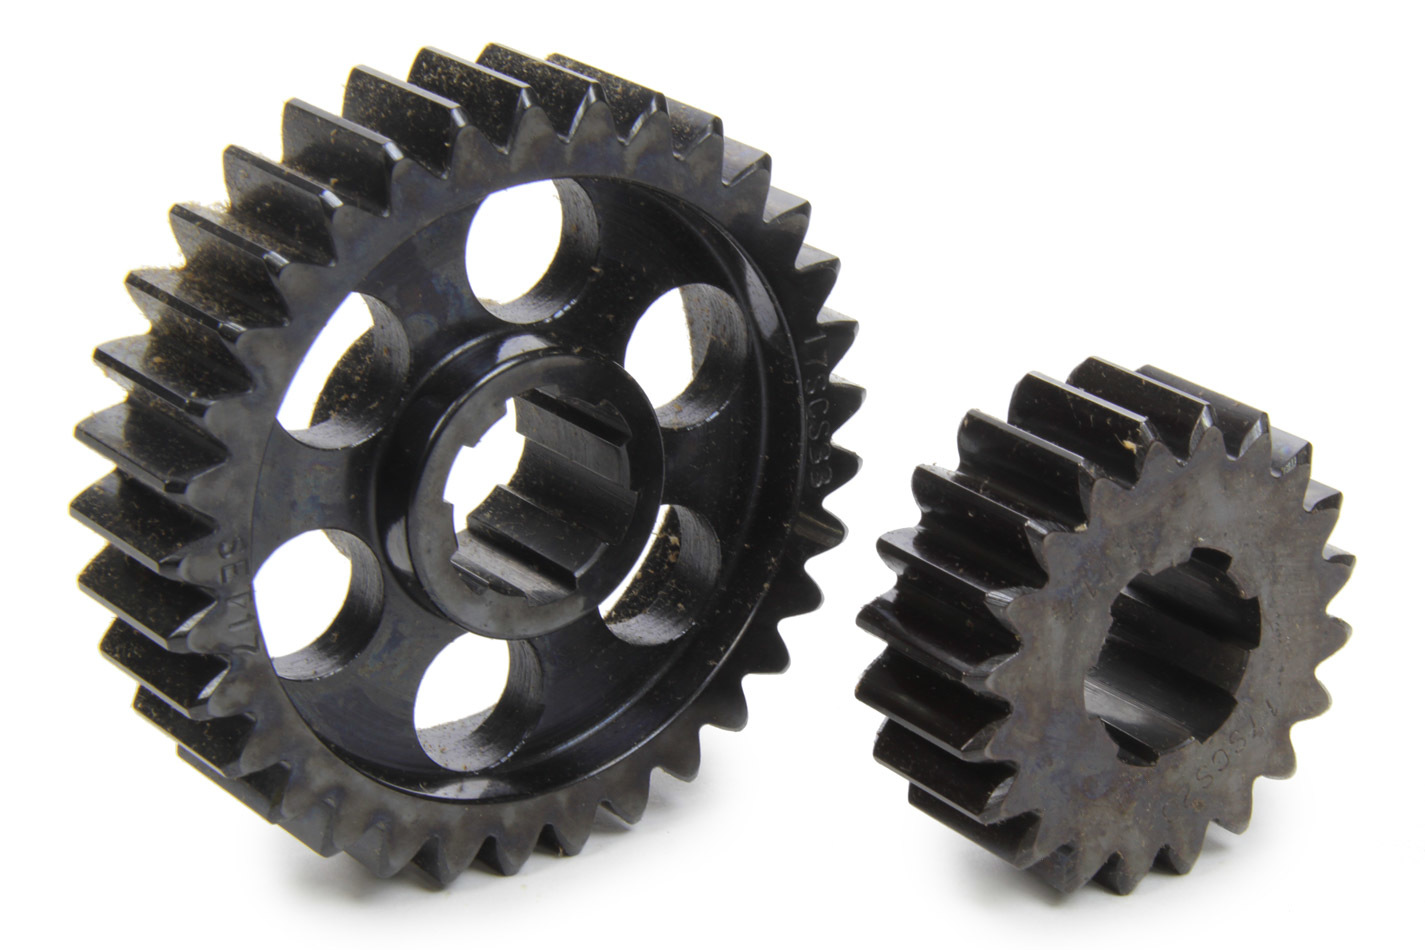 SCS Gears 617 Quick Change Gear Set, Professional, Set 617, 6 Spline, 4.11 Ratio 2.49 / 6.78, 4.33 Ratio 2.62 / 7.14, Steel, Each